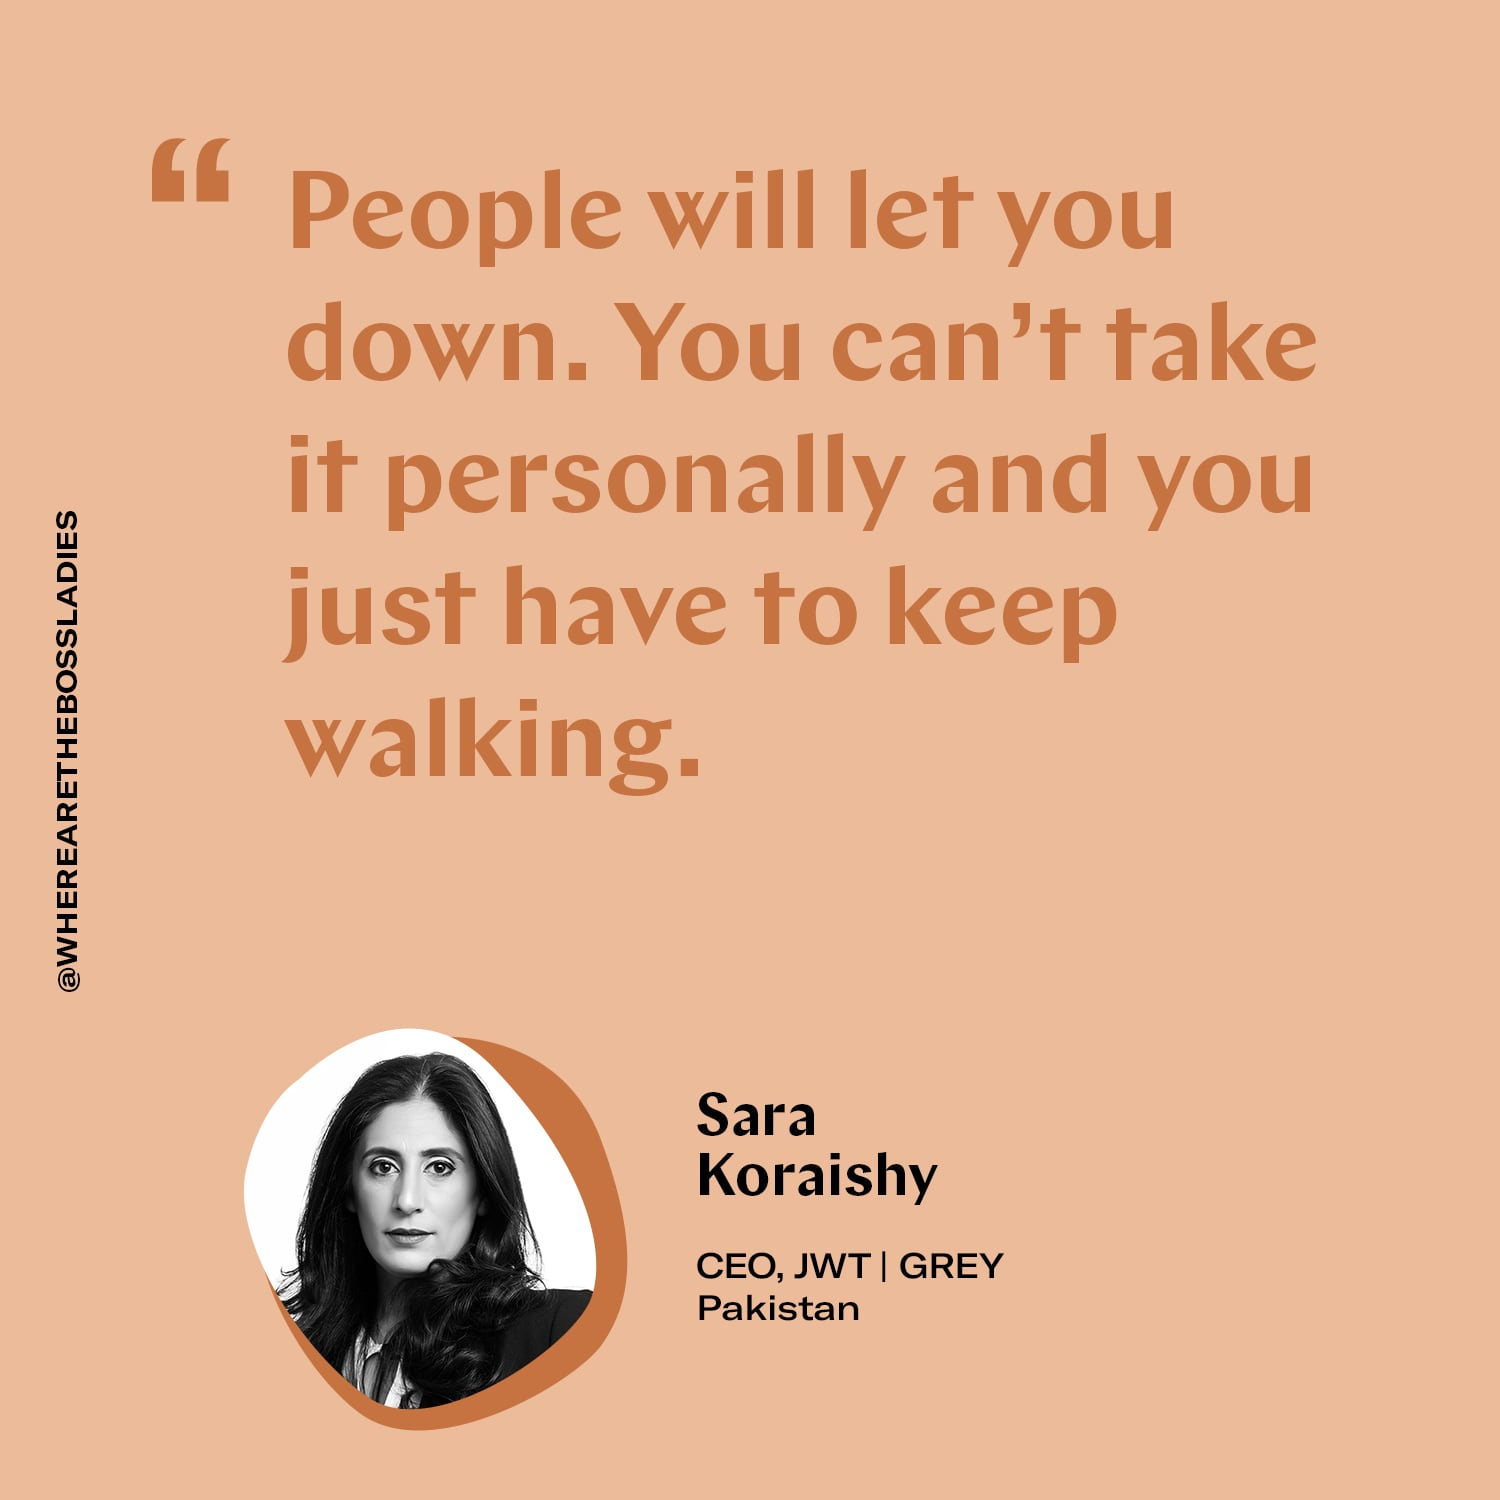 Sara Koraishy JWT GREY Pakistan where are the boss ladies ad life leadership 02.jpg